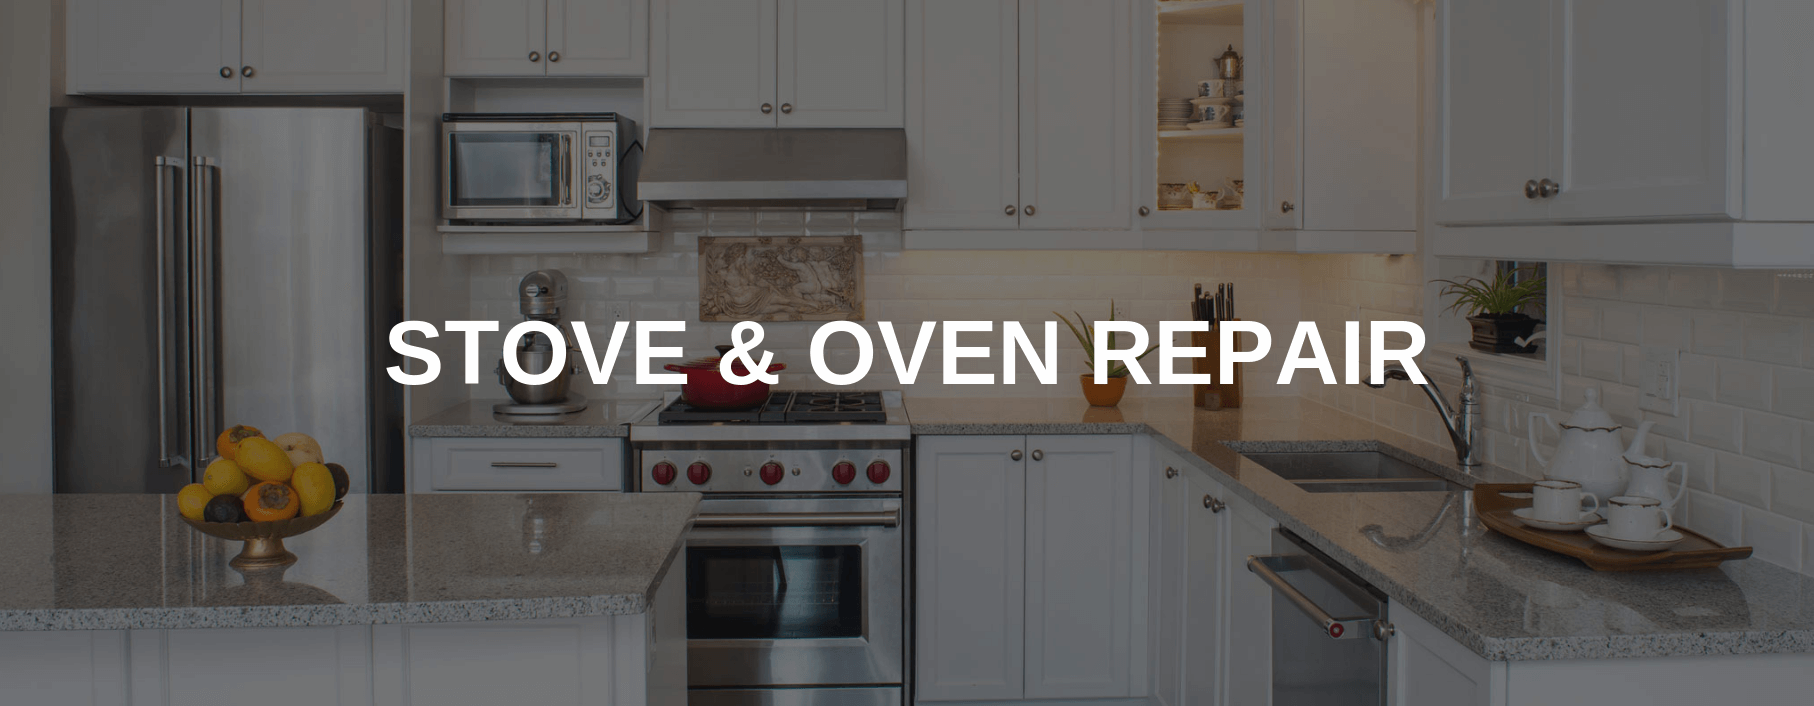 stove repair council bluffs